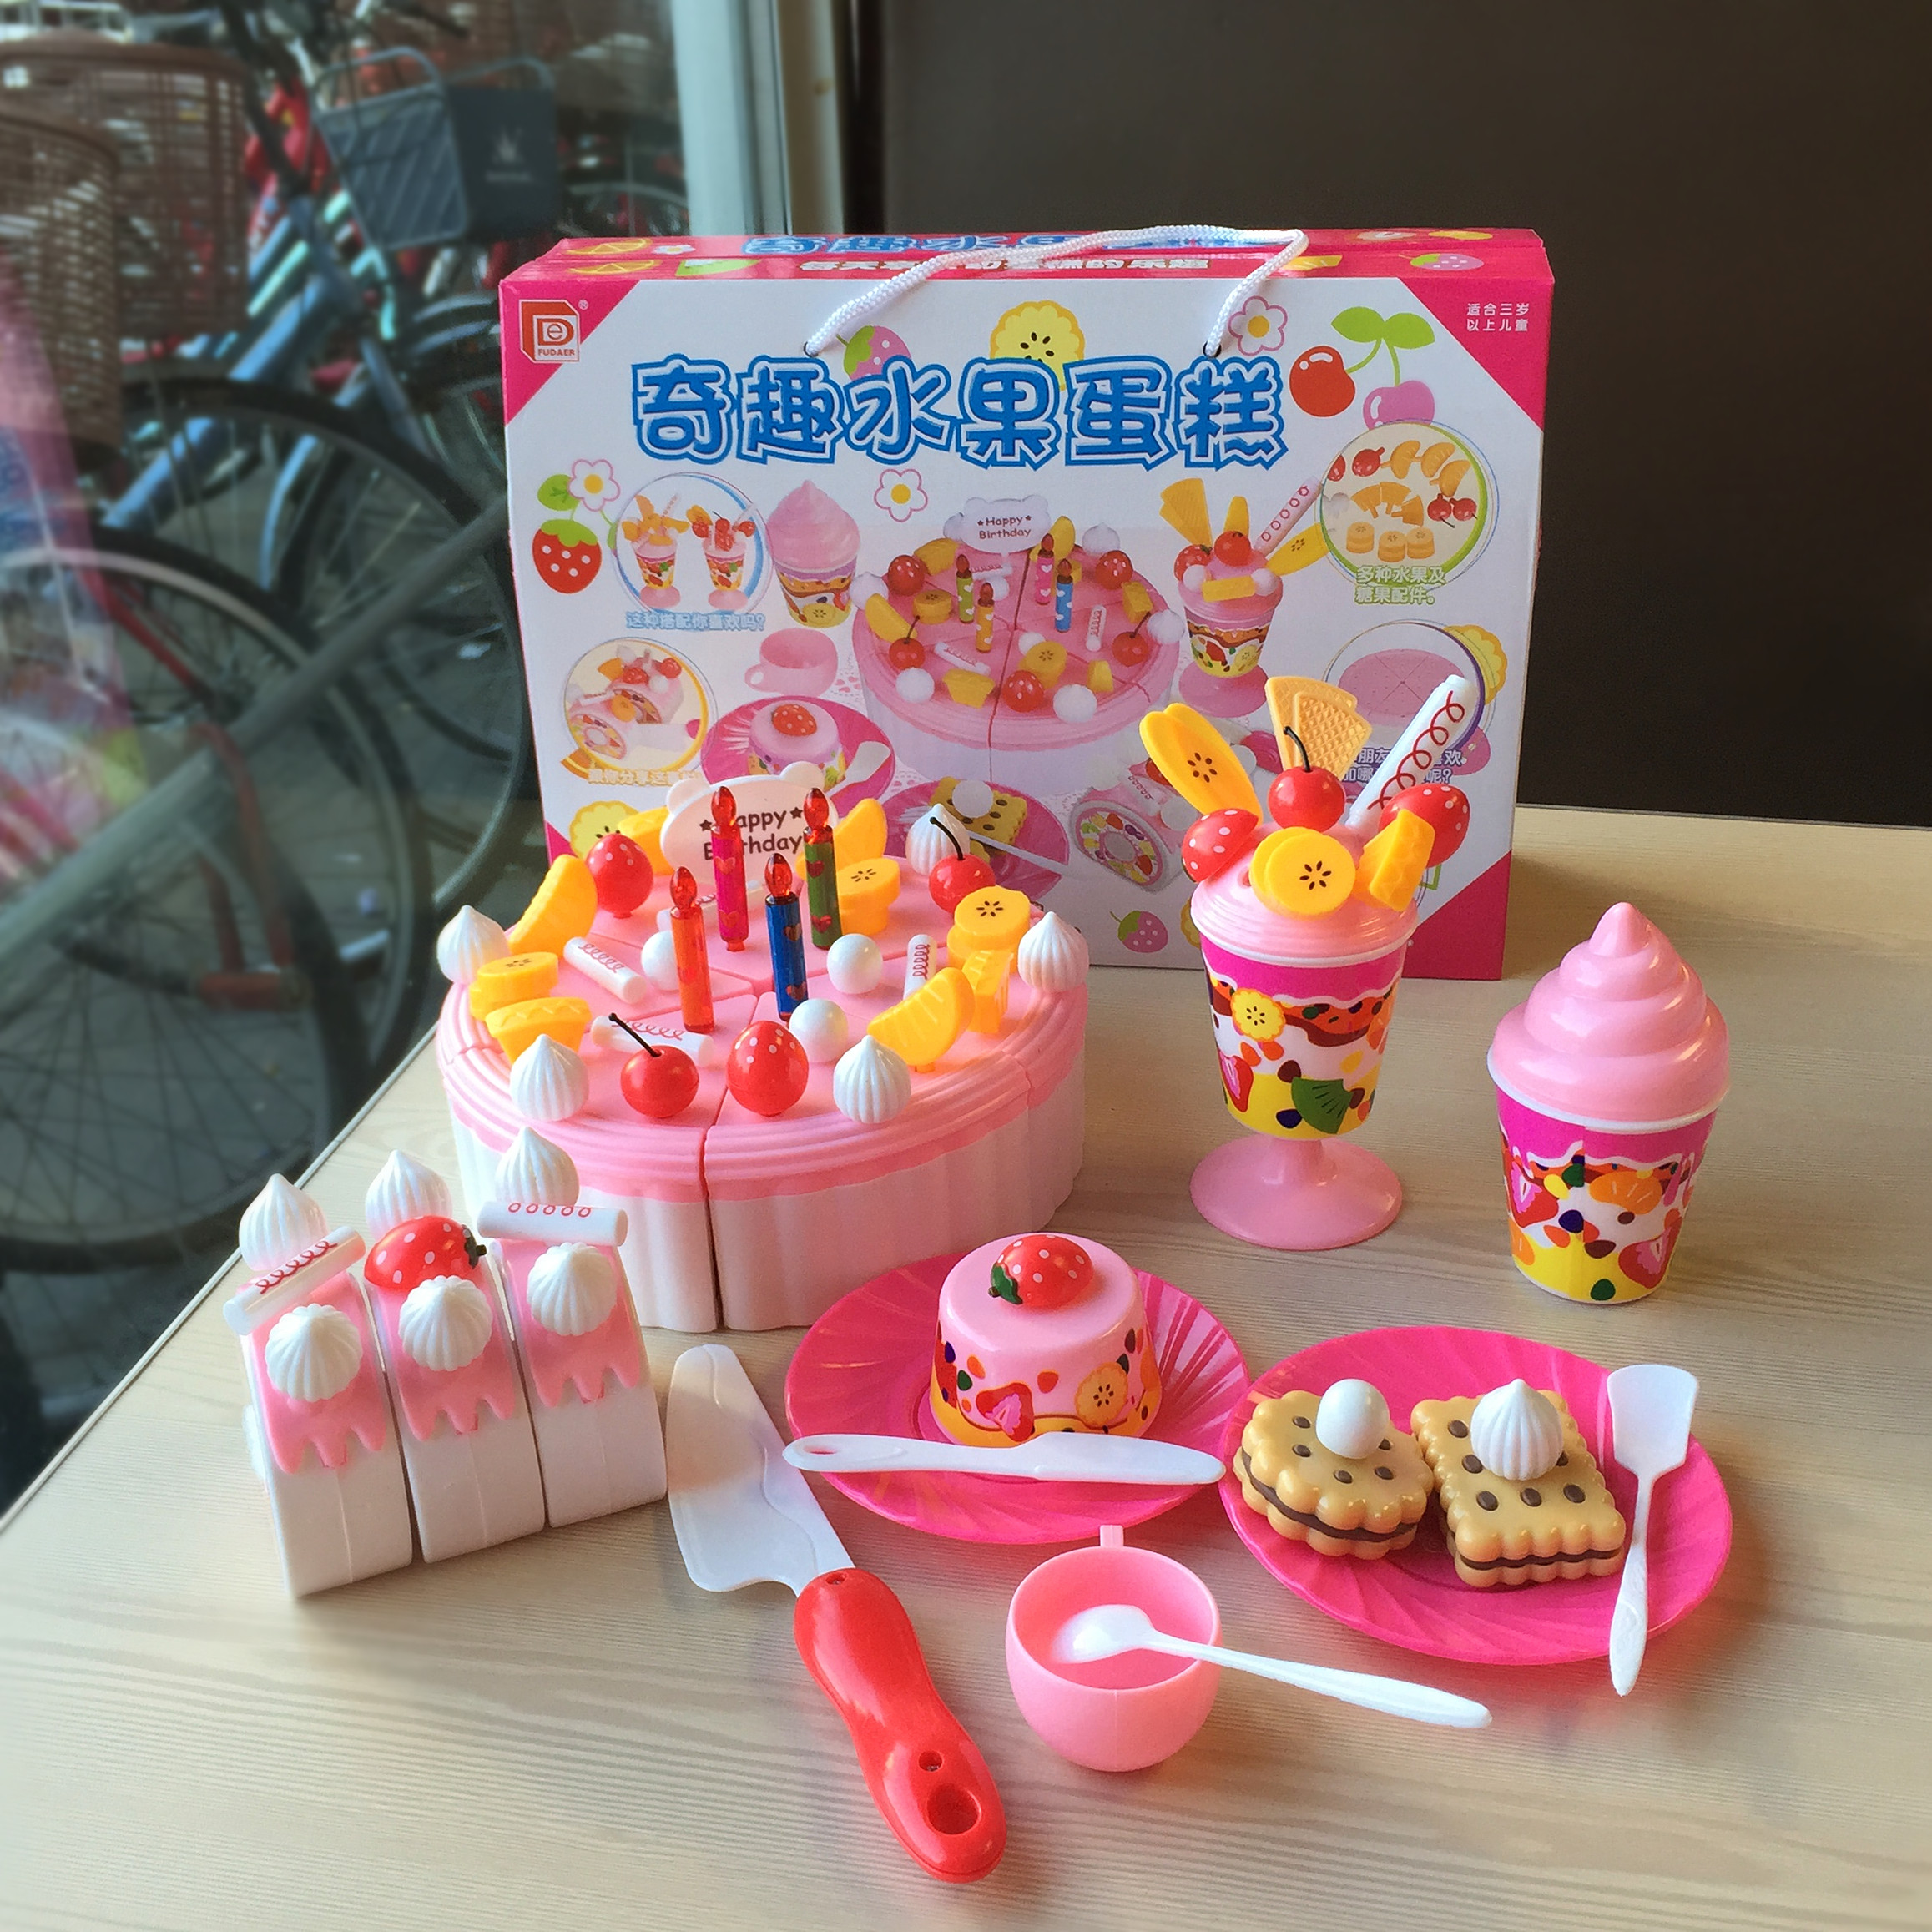 Play House Children Do Strawberry Birthday Cake Set Cut Cherie 3 4 6 Years Old 5 Girls Baby Educational Toys